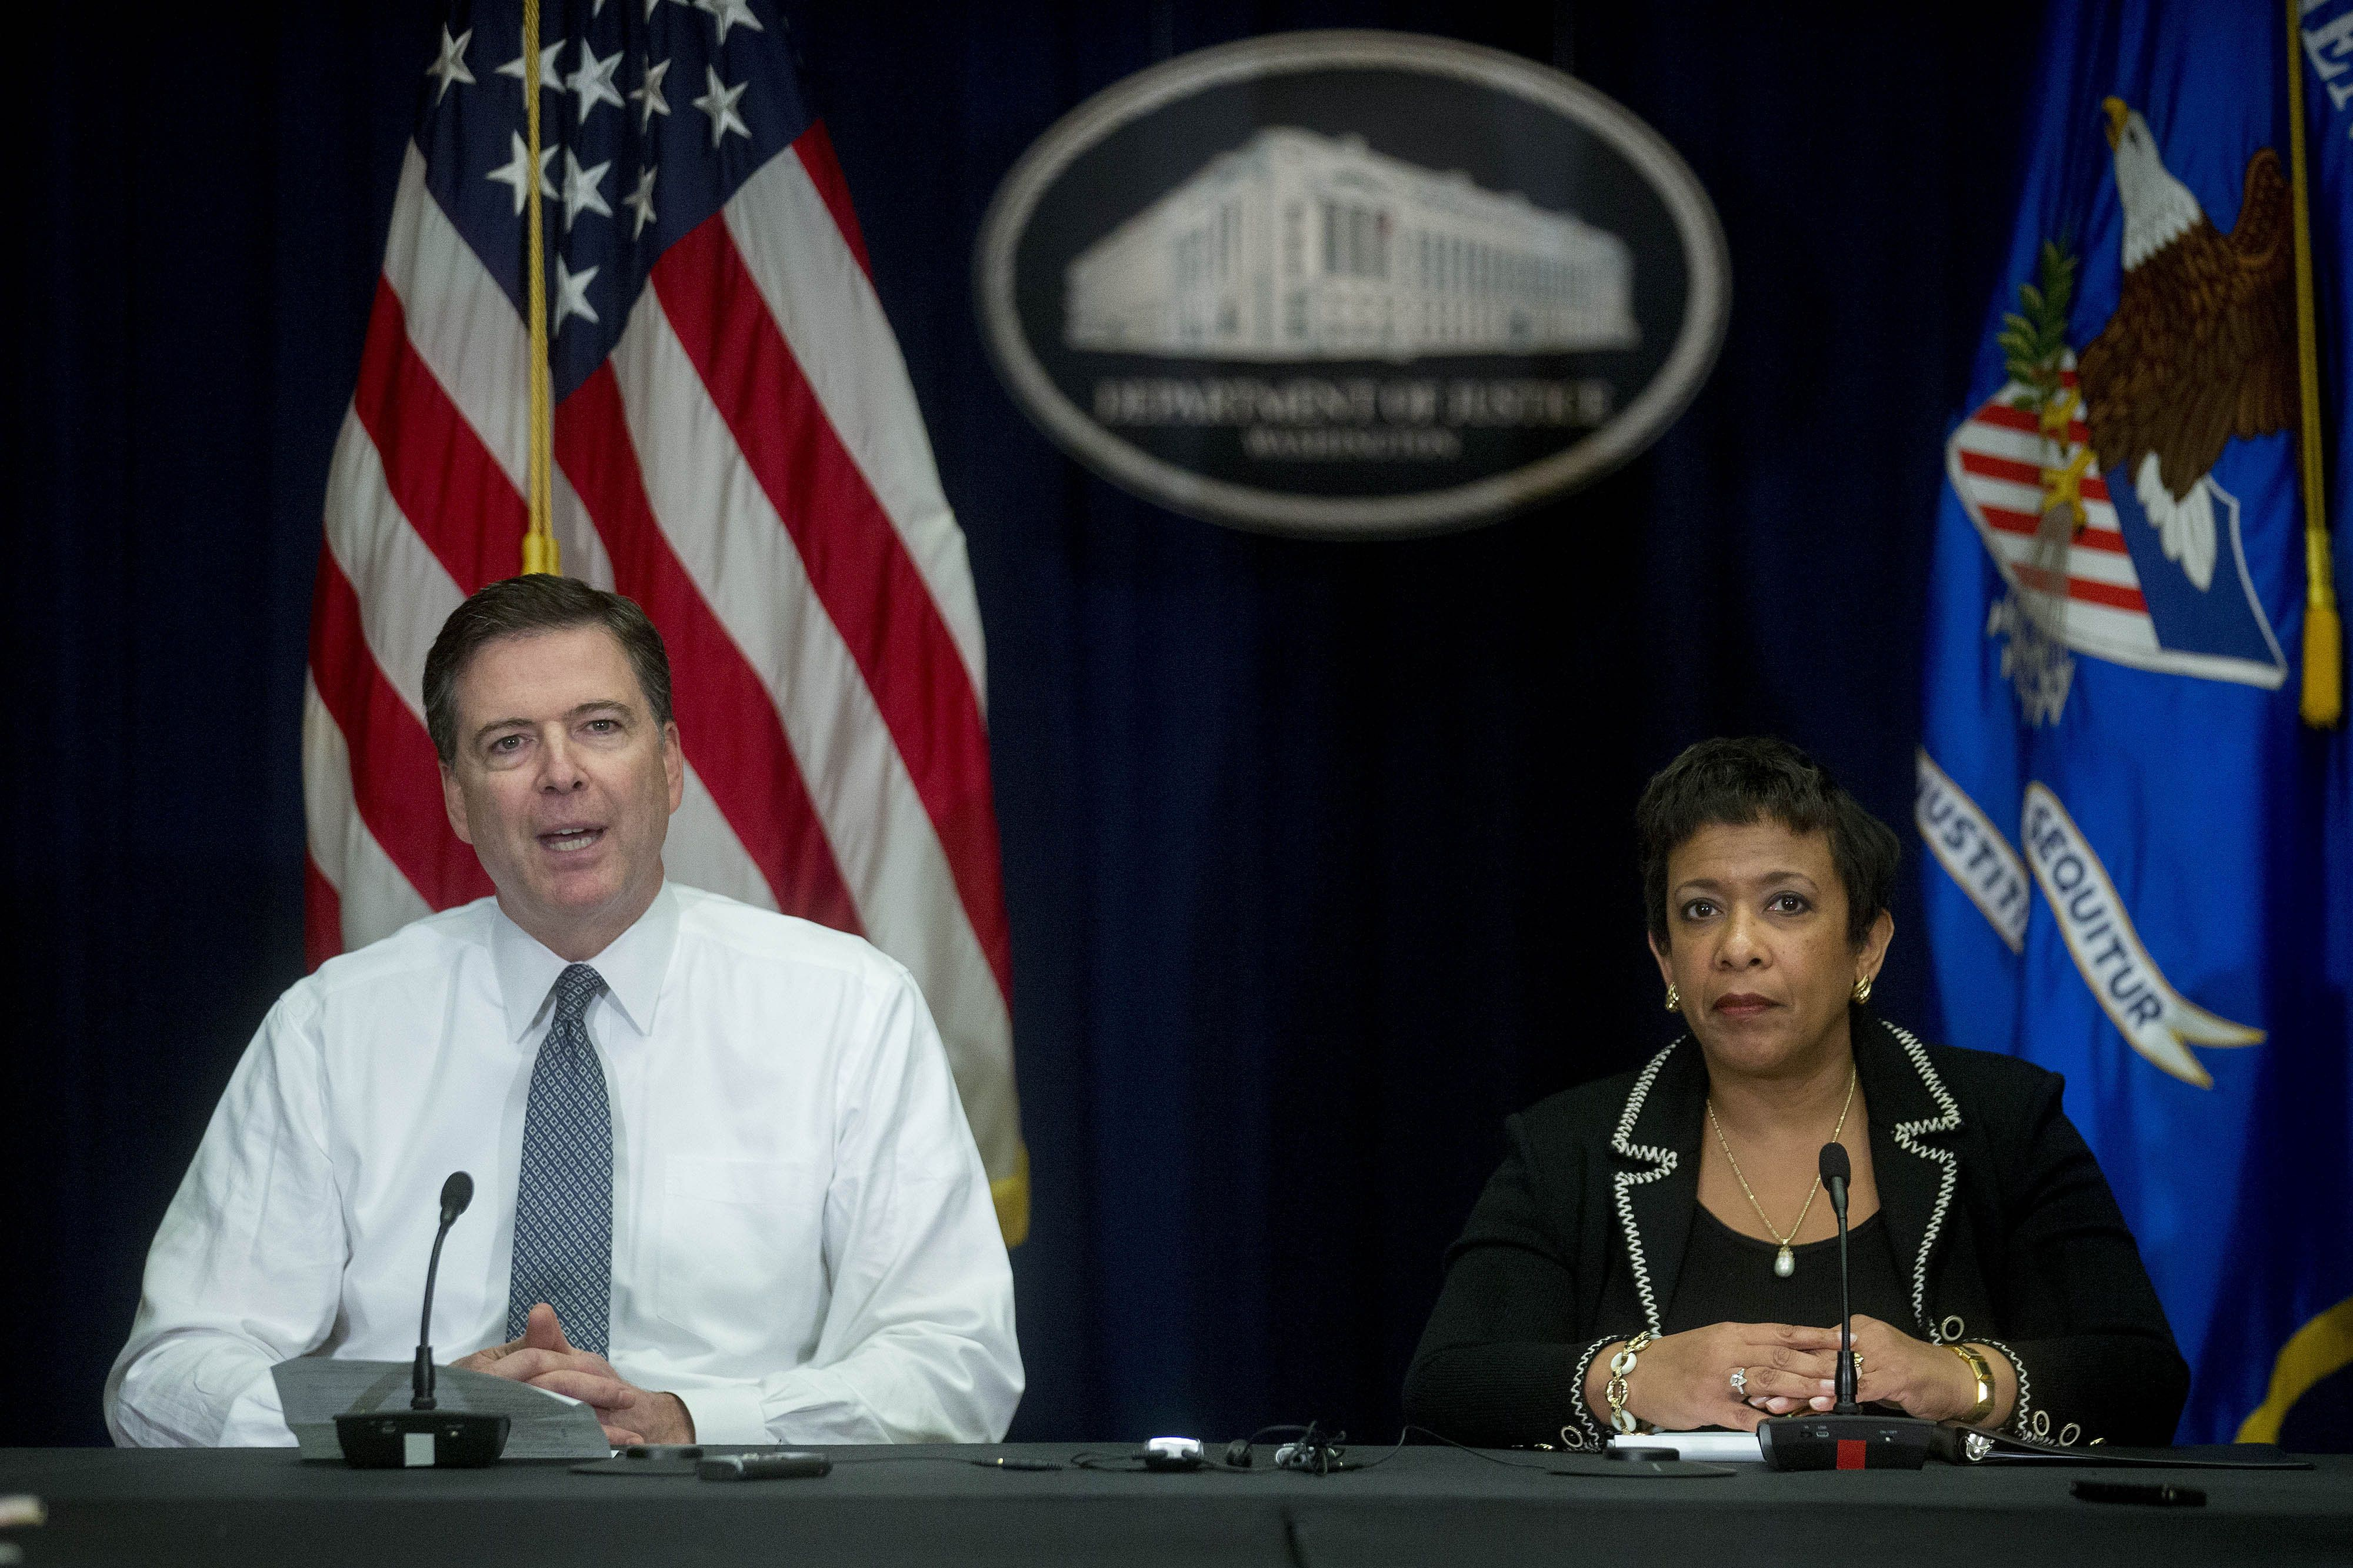 James Comey, director of the Federal Bureau of Investigation (FBI), left, speaks during a news conference with Loretta Lynch, U.S. attorney general, at the Department of Justice in Washington, D.C., U.S., on Thursday, Nov. 19, 2015. Comey told reporters that the greater threat in the U.S. is troubled people inspired by Islamic State attacks, rather than the coordinated attacks as in Paris and that Americans shouldnt let fear rule their lives. Photographer: Andrew Harrer/Bloomberg via Getty Images